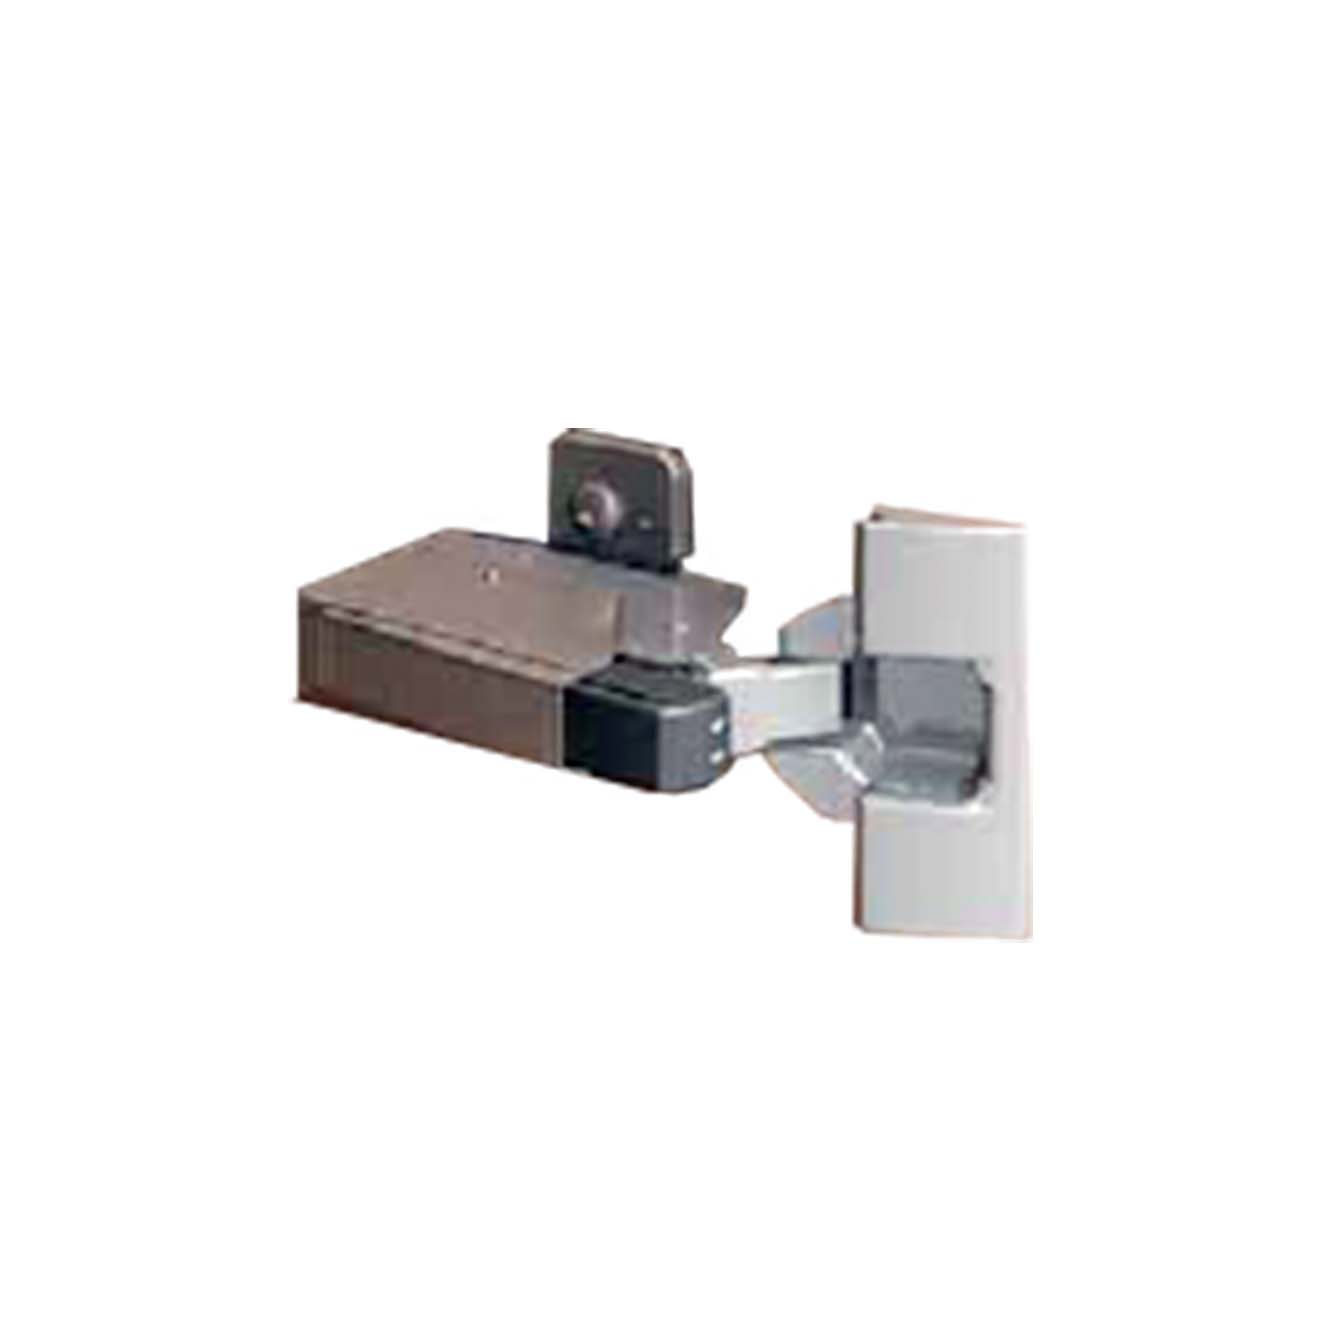 Blum Compact Blumotion Hinge Cup Spacer 1 16 Inch